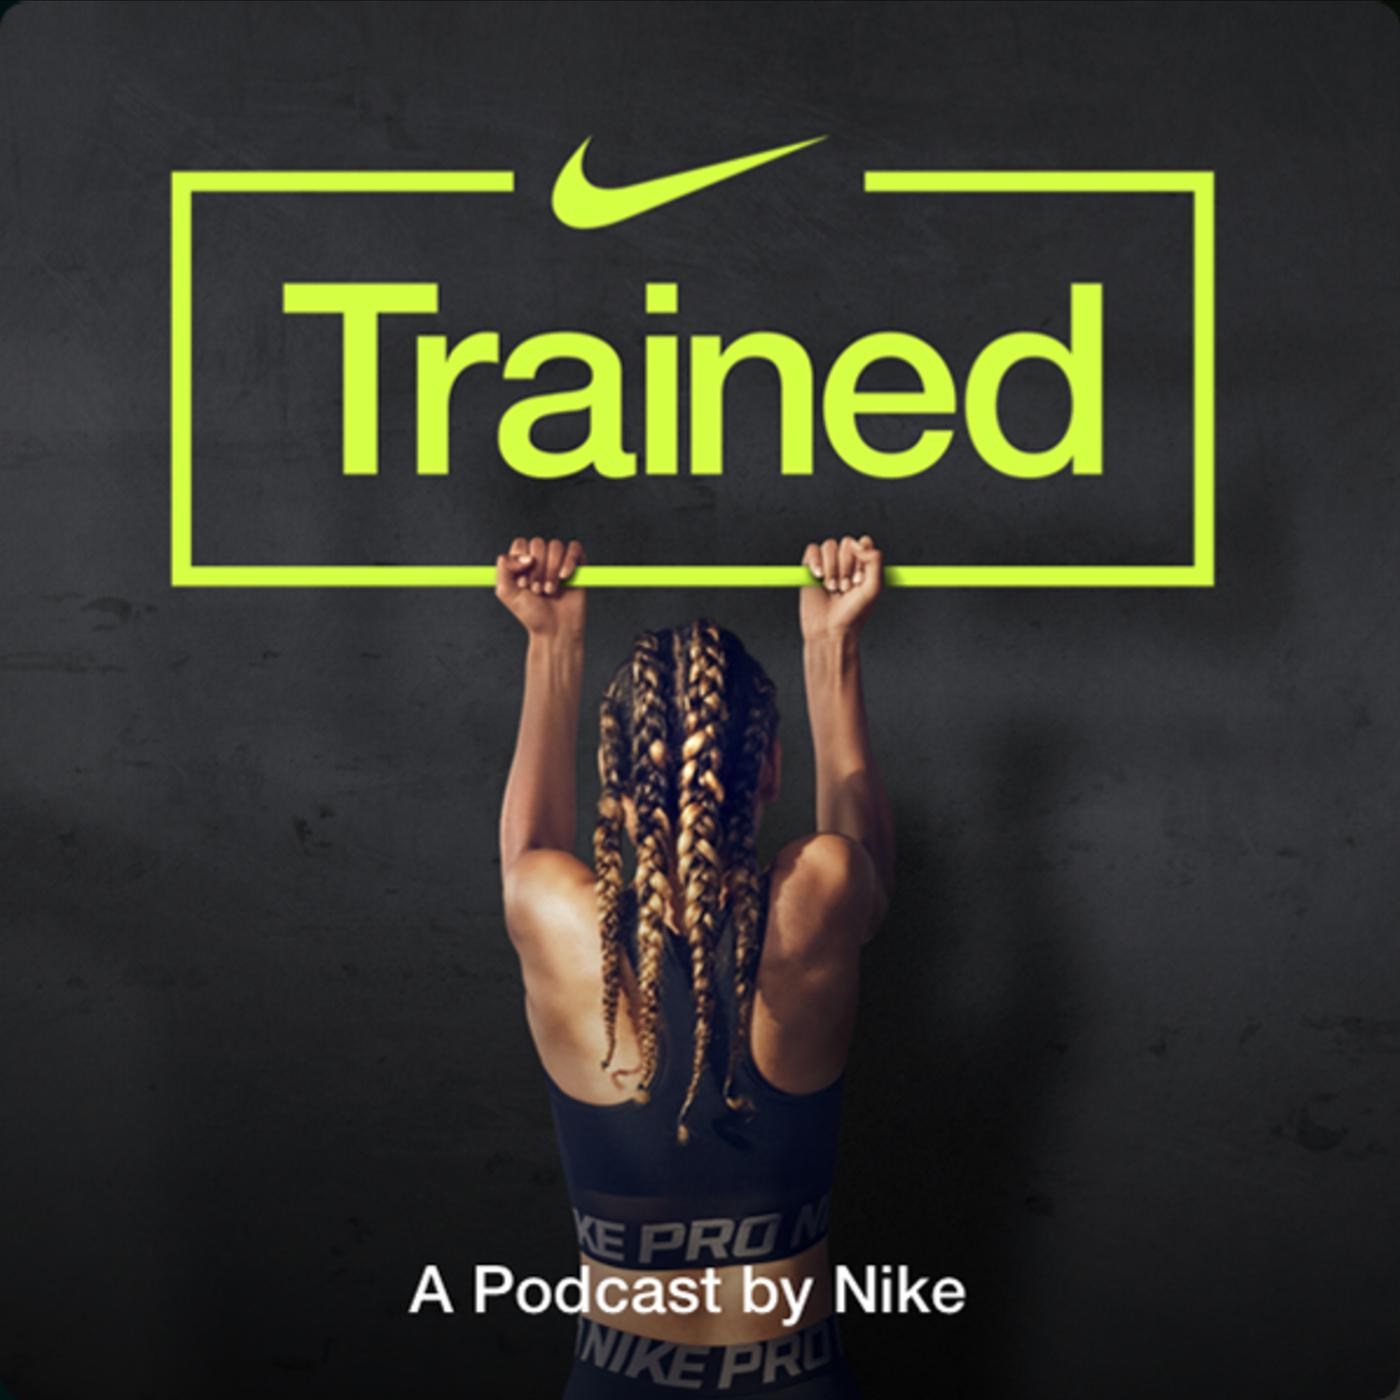 0c9f557aac TRAINED (podcast) - Nike | Listen Notes